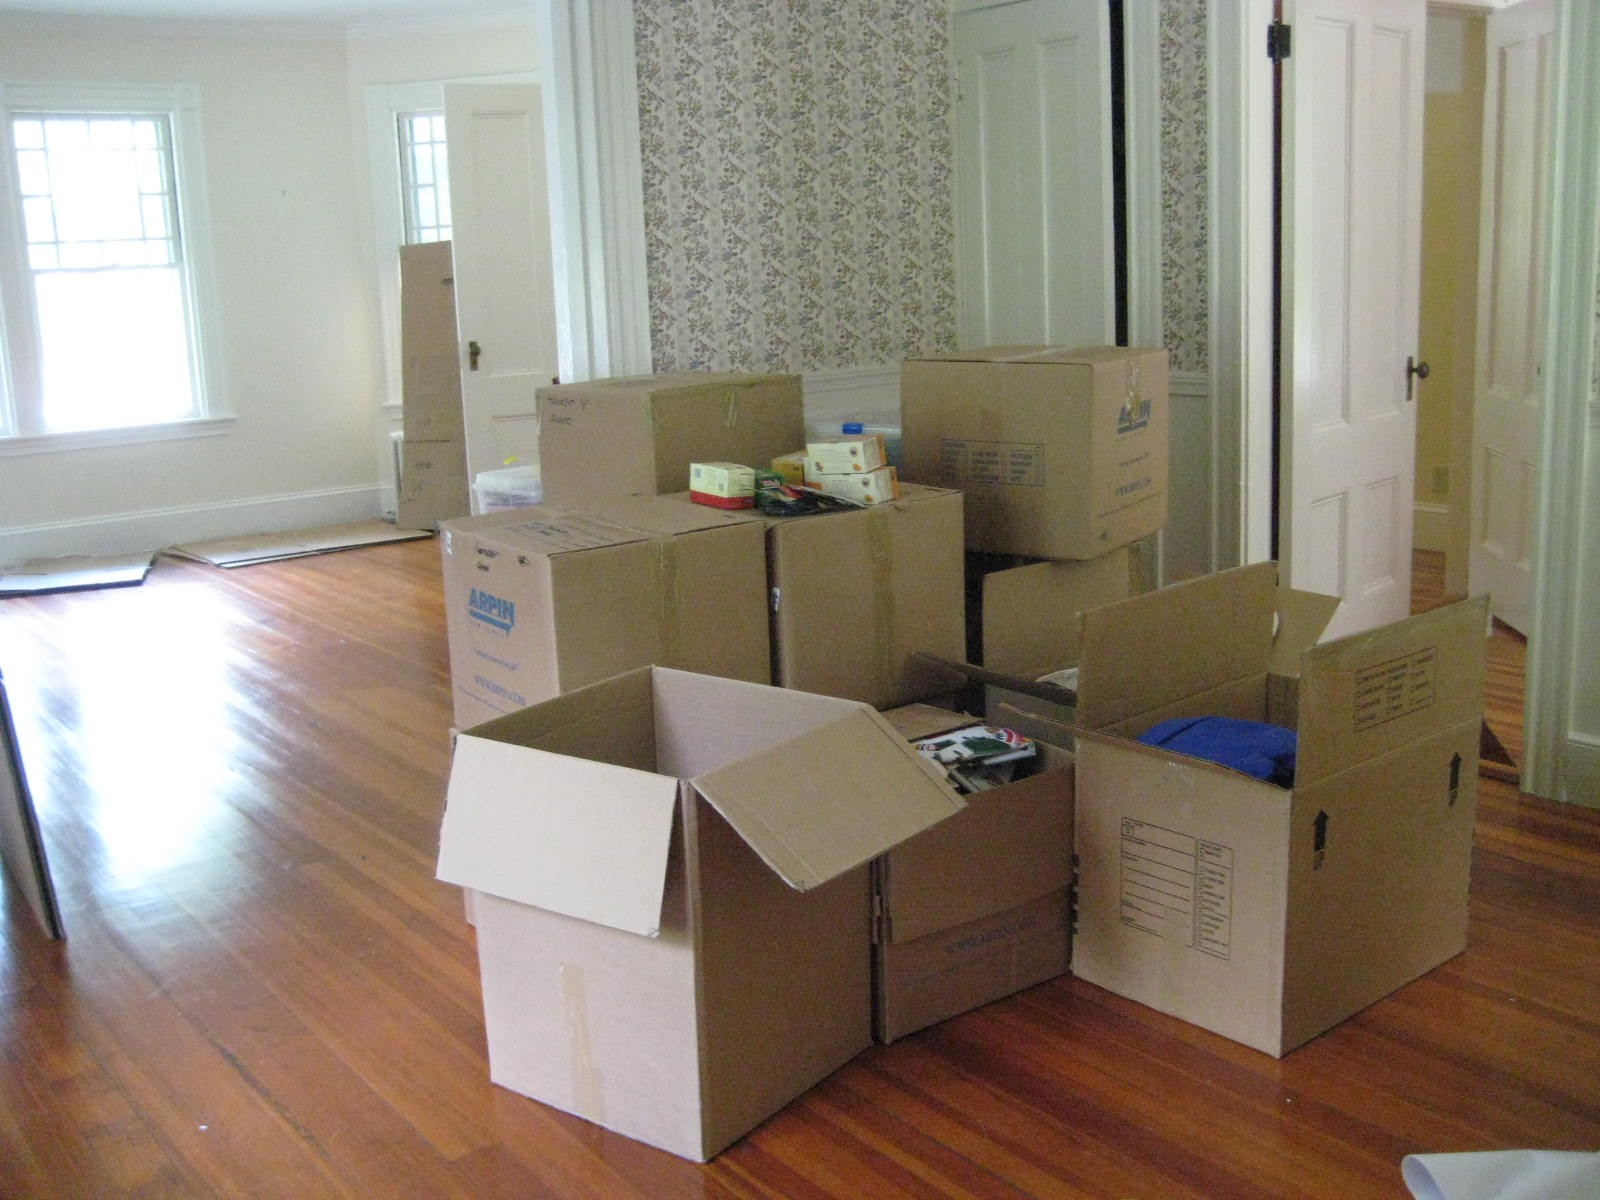 Handy Hacks for Making Moving House Less of a Stress